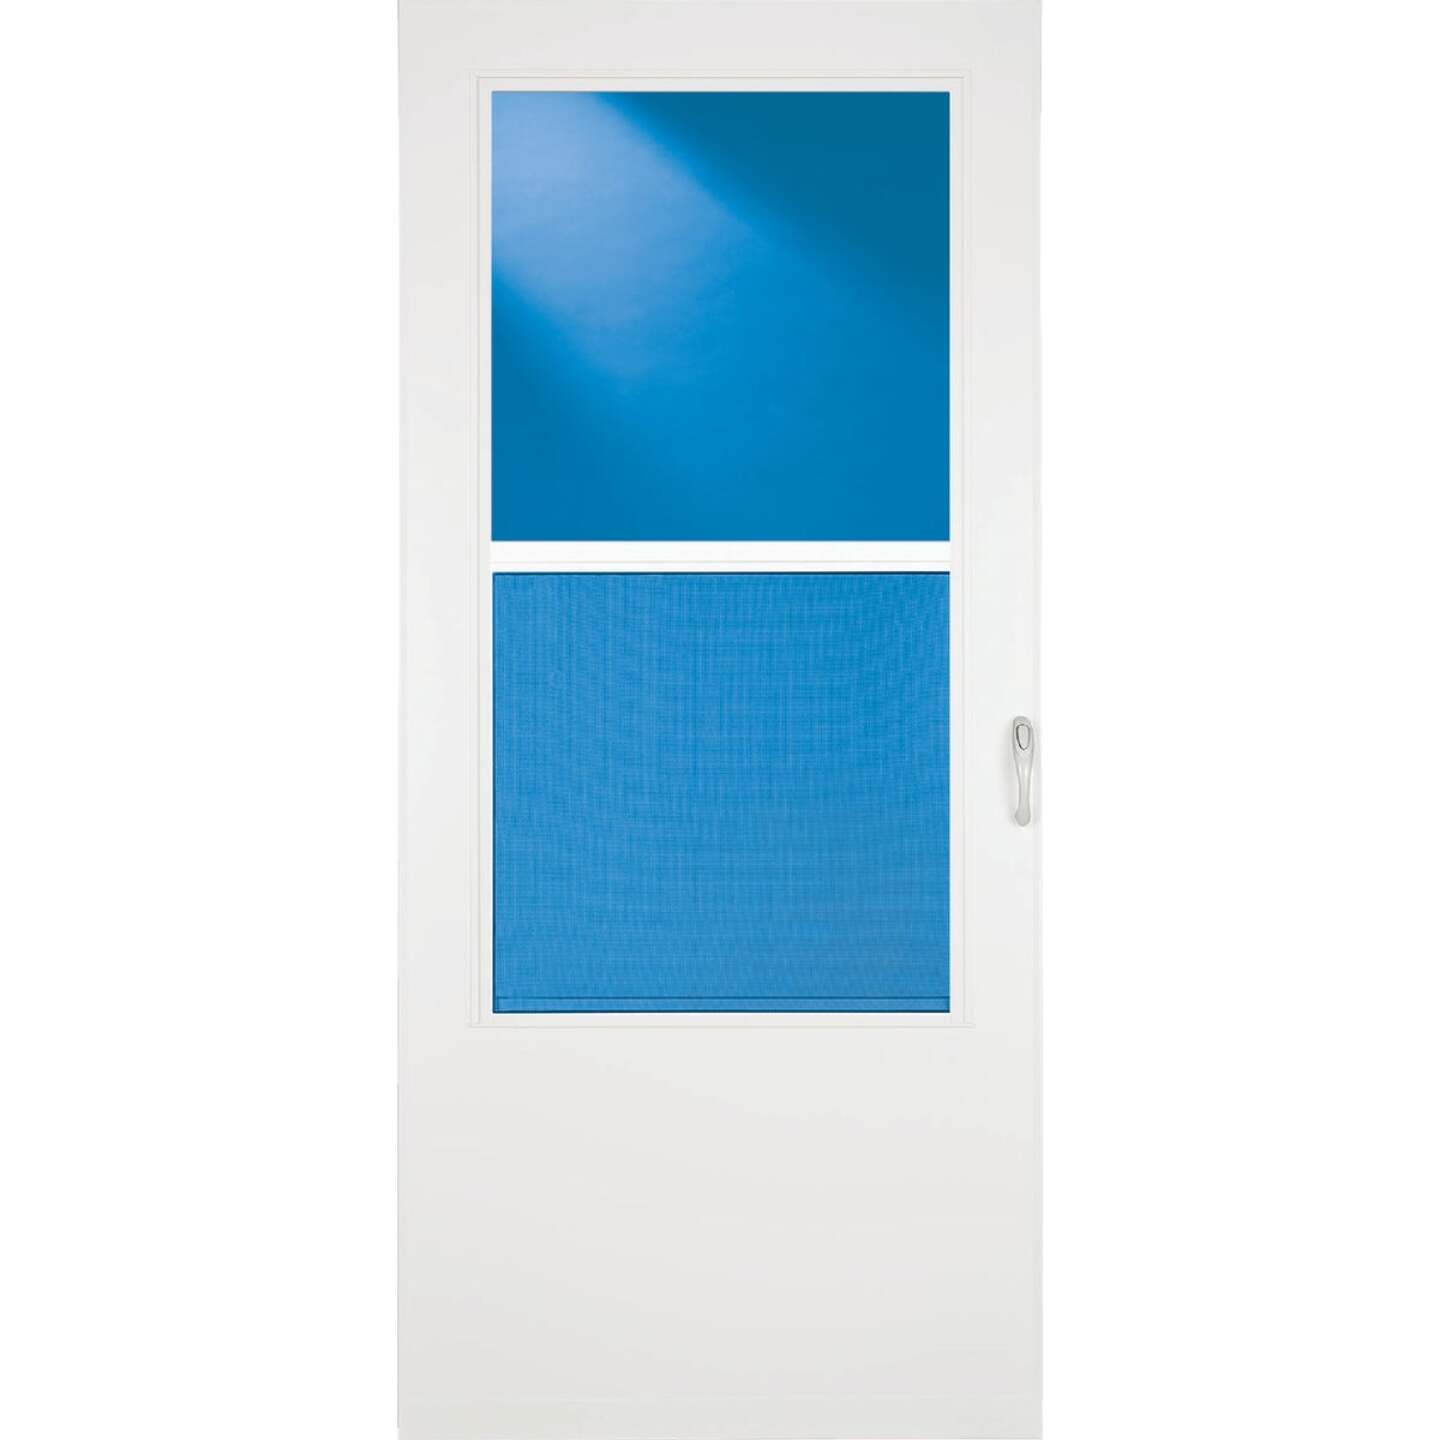 Larson Value-Core 36 In. W x 80 In. H x 1 In. Thick White Self-Storing Aluminum Storm Door Image 4